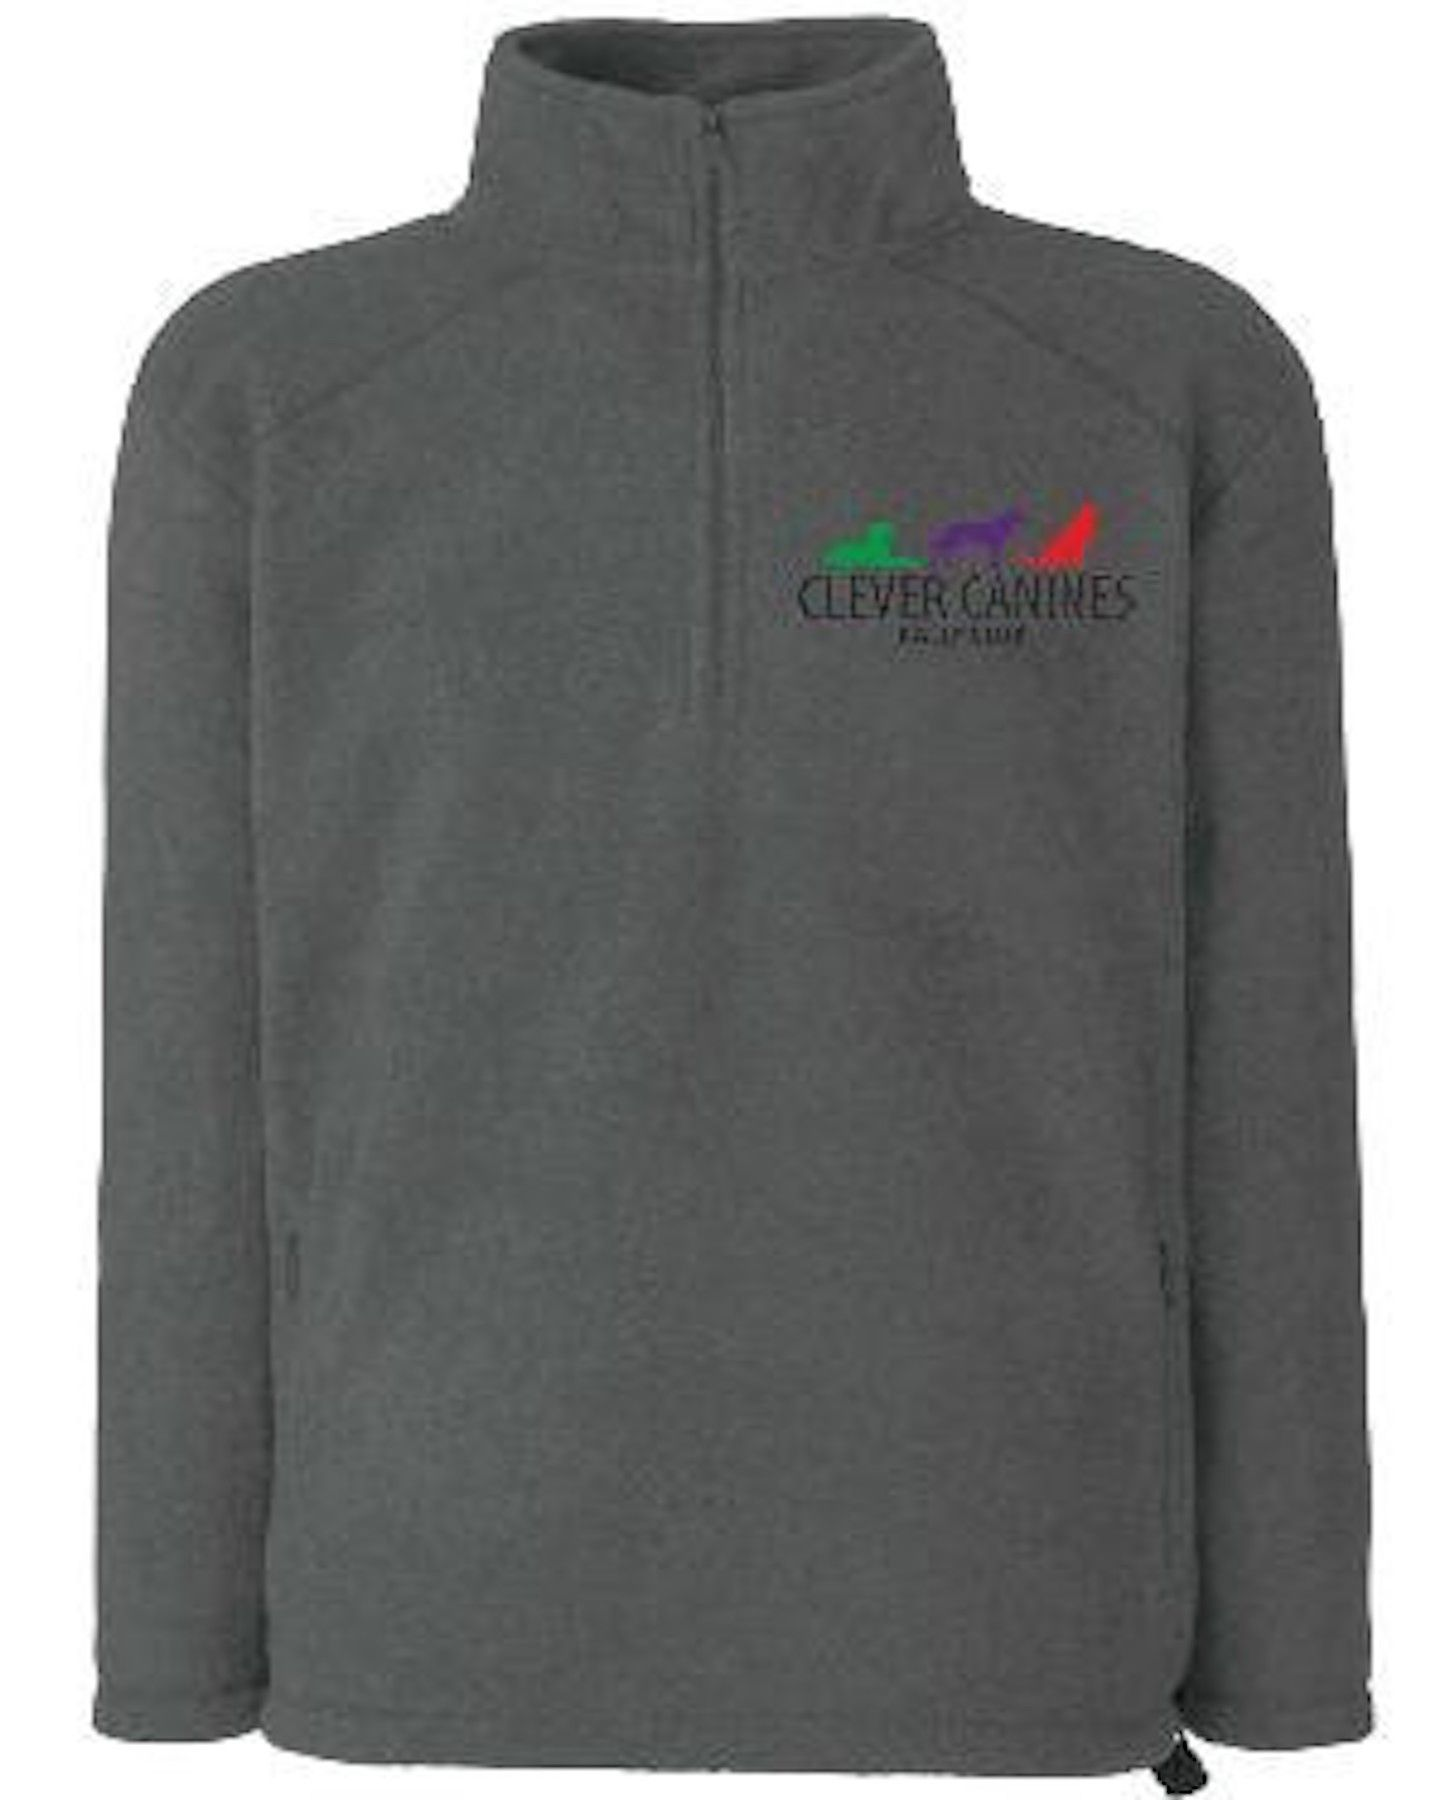 Clever Canines Rally Club Unisex Half-Zip Fleece